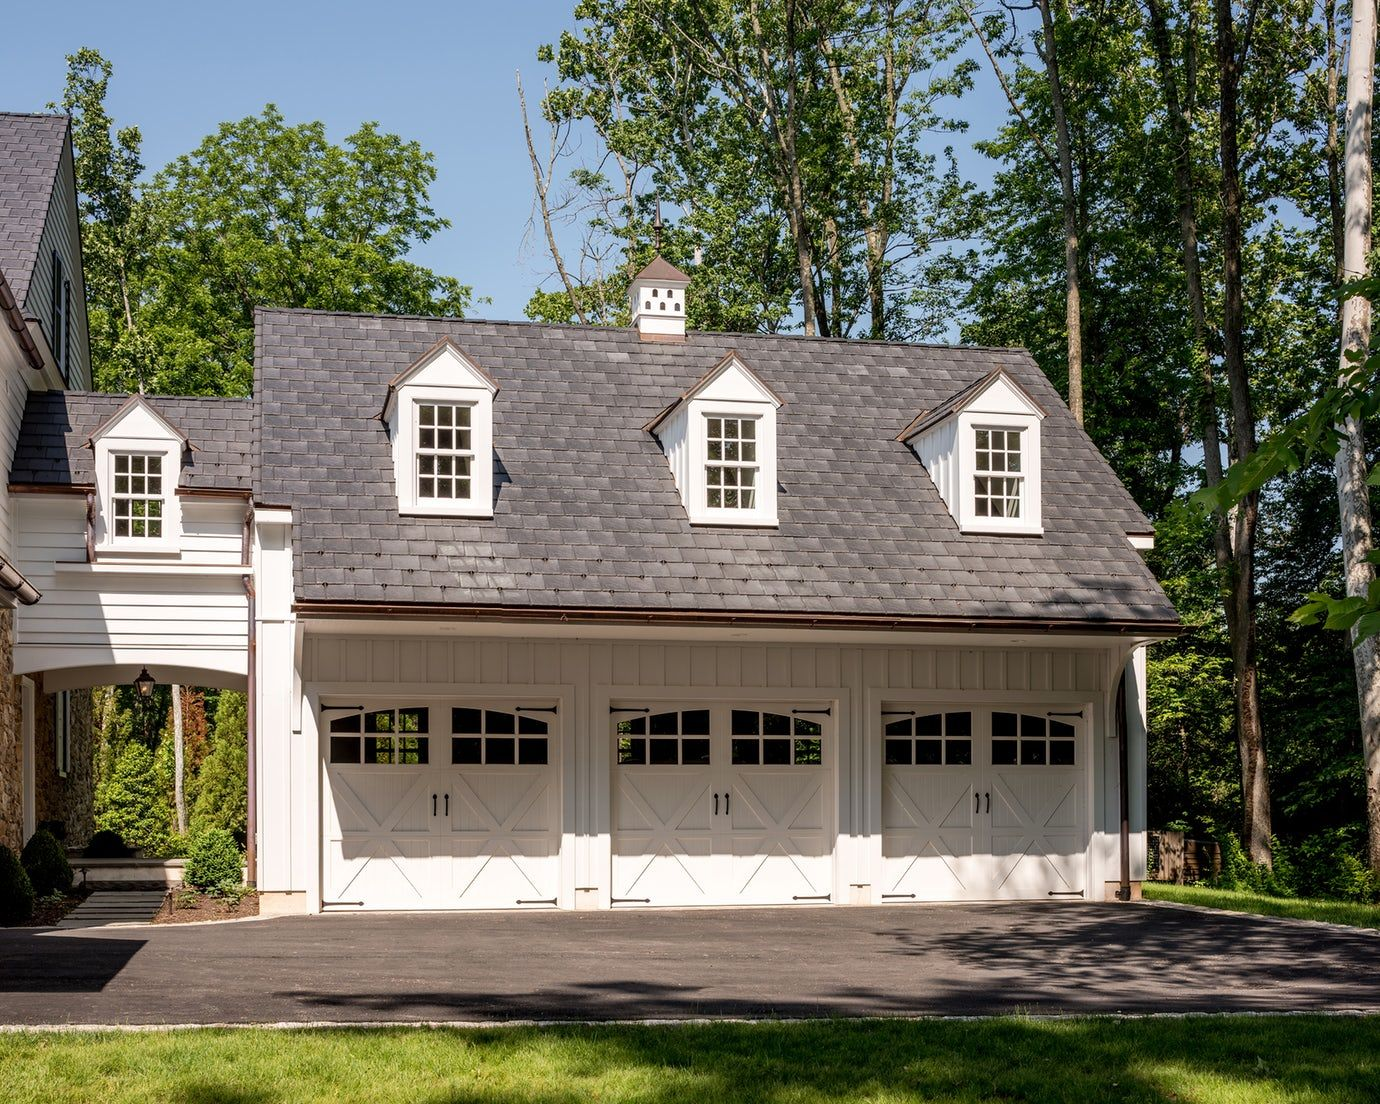 Carriage House Style Garage Attached To Pennsylvania Farmhouse Colonial American GarageCarport By Period Architecture